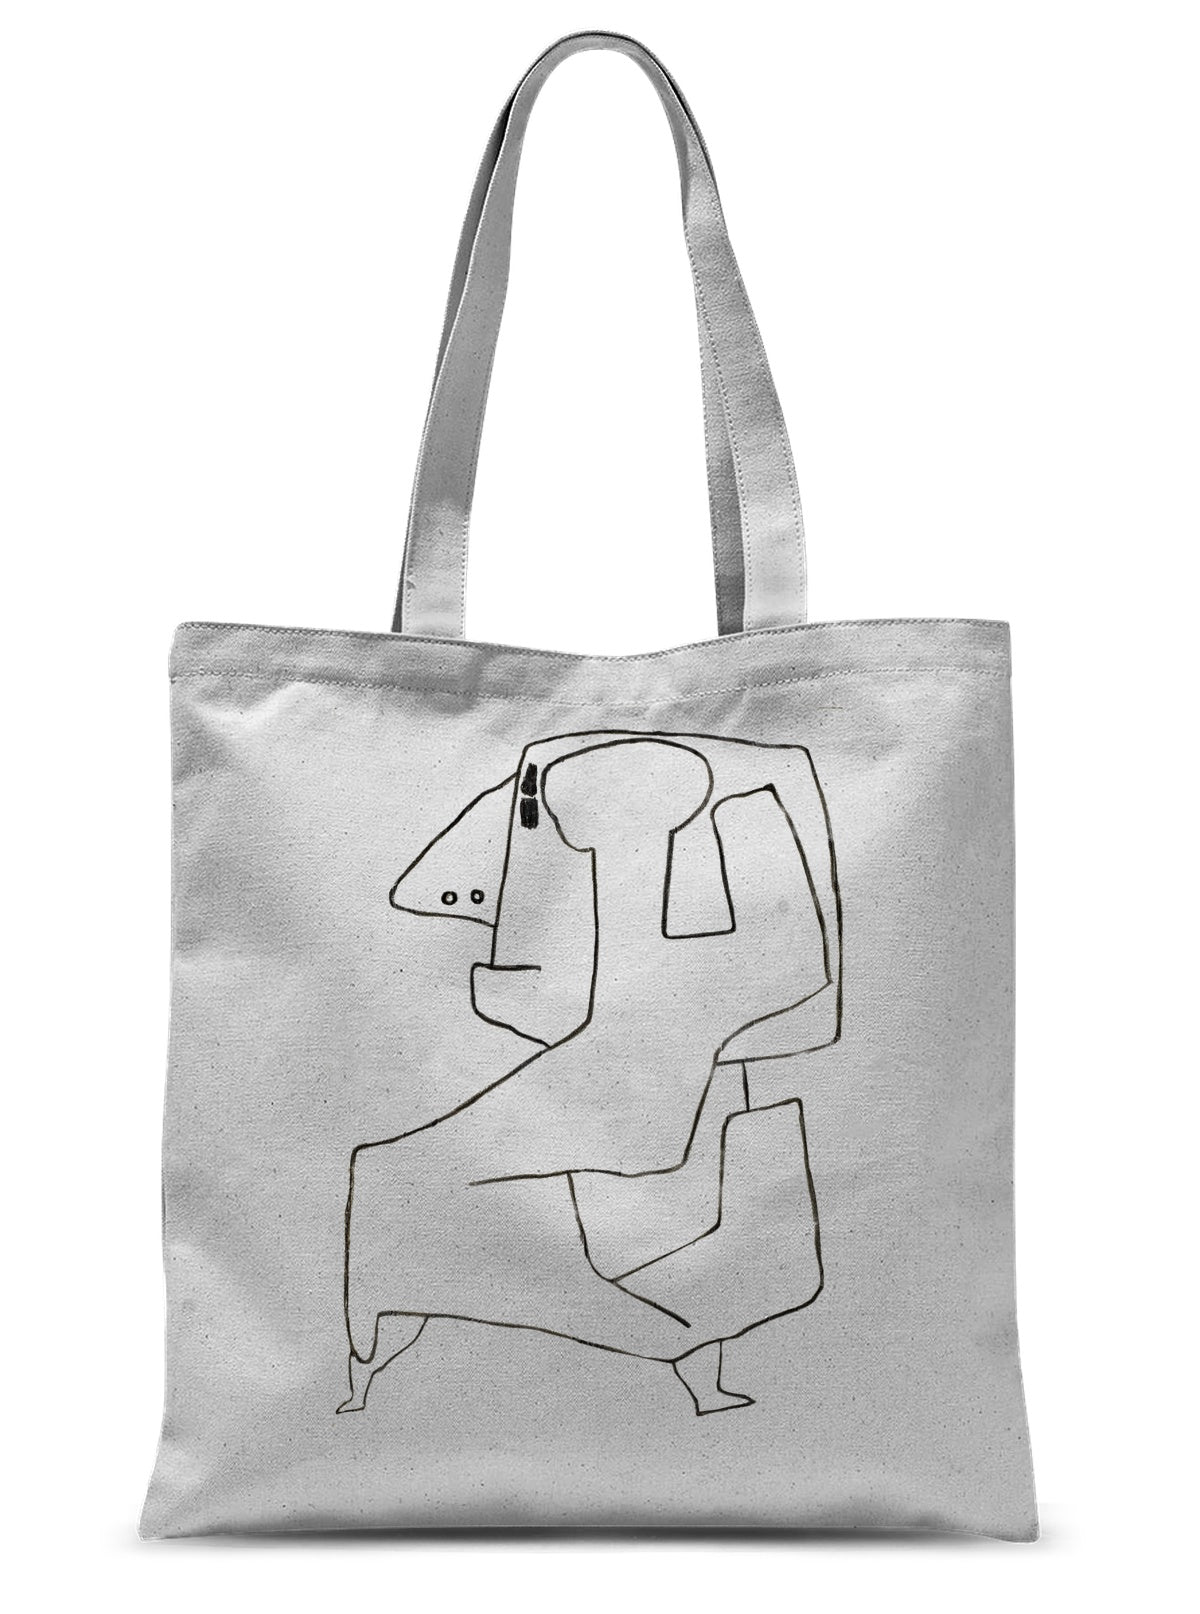 Ohne Titel by Paul Klee, circa 1940 - Tote Bag